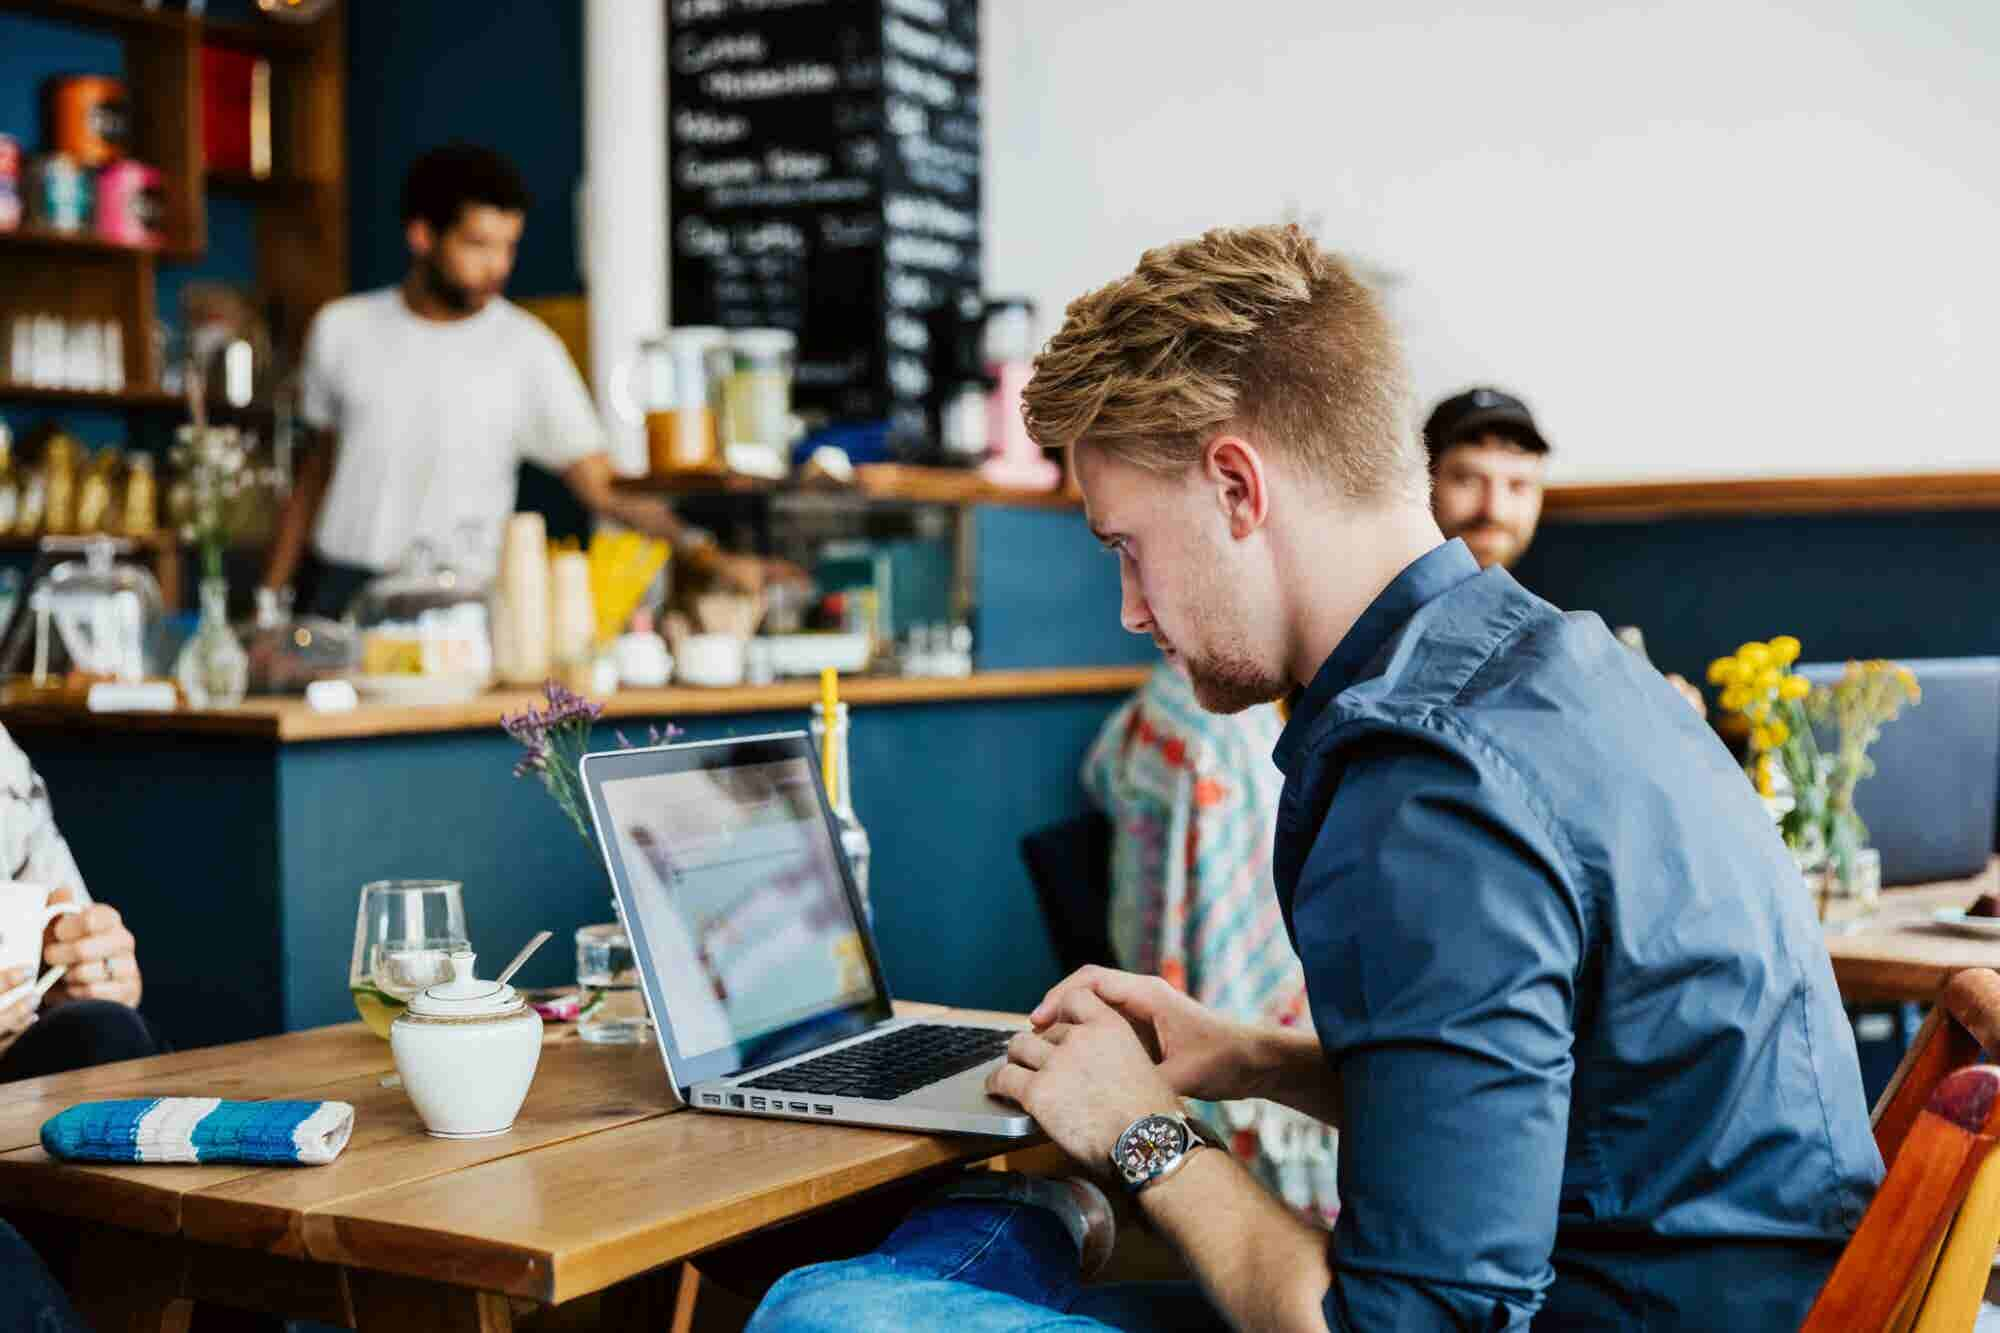 How to Transition Your Team to Remote Work